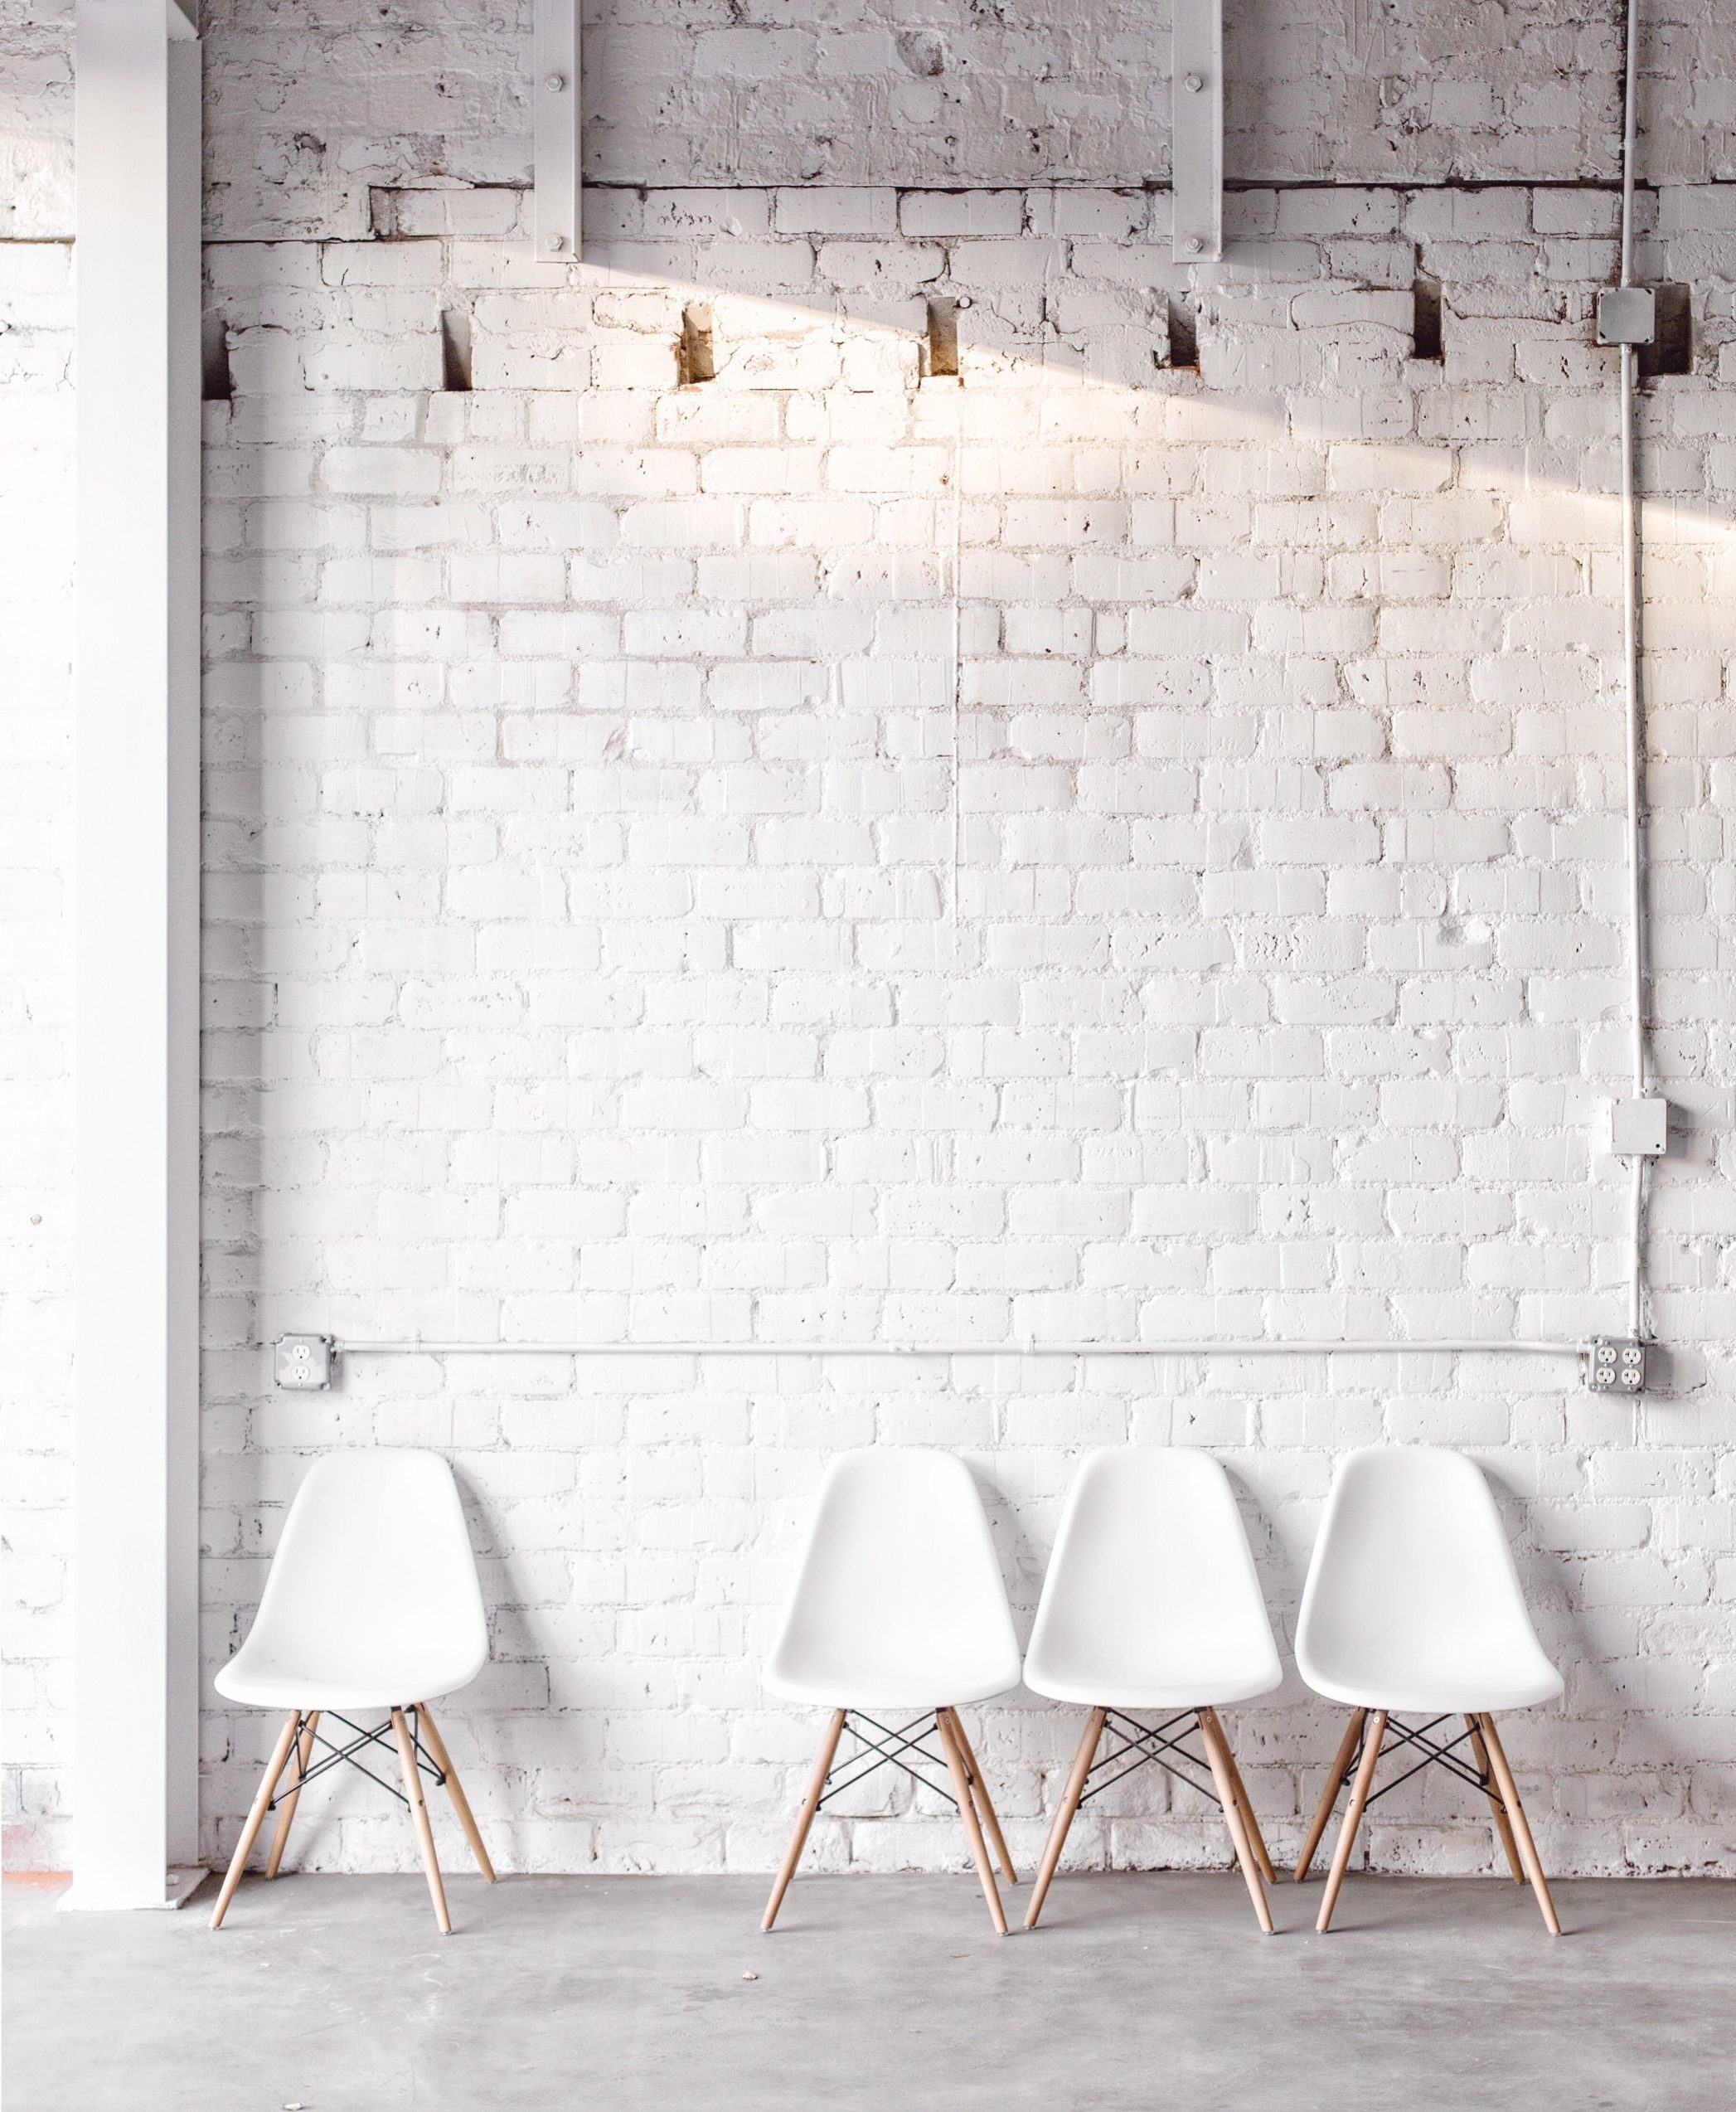 white molded eames shell chairs via @citysage